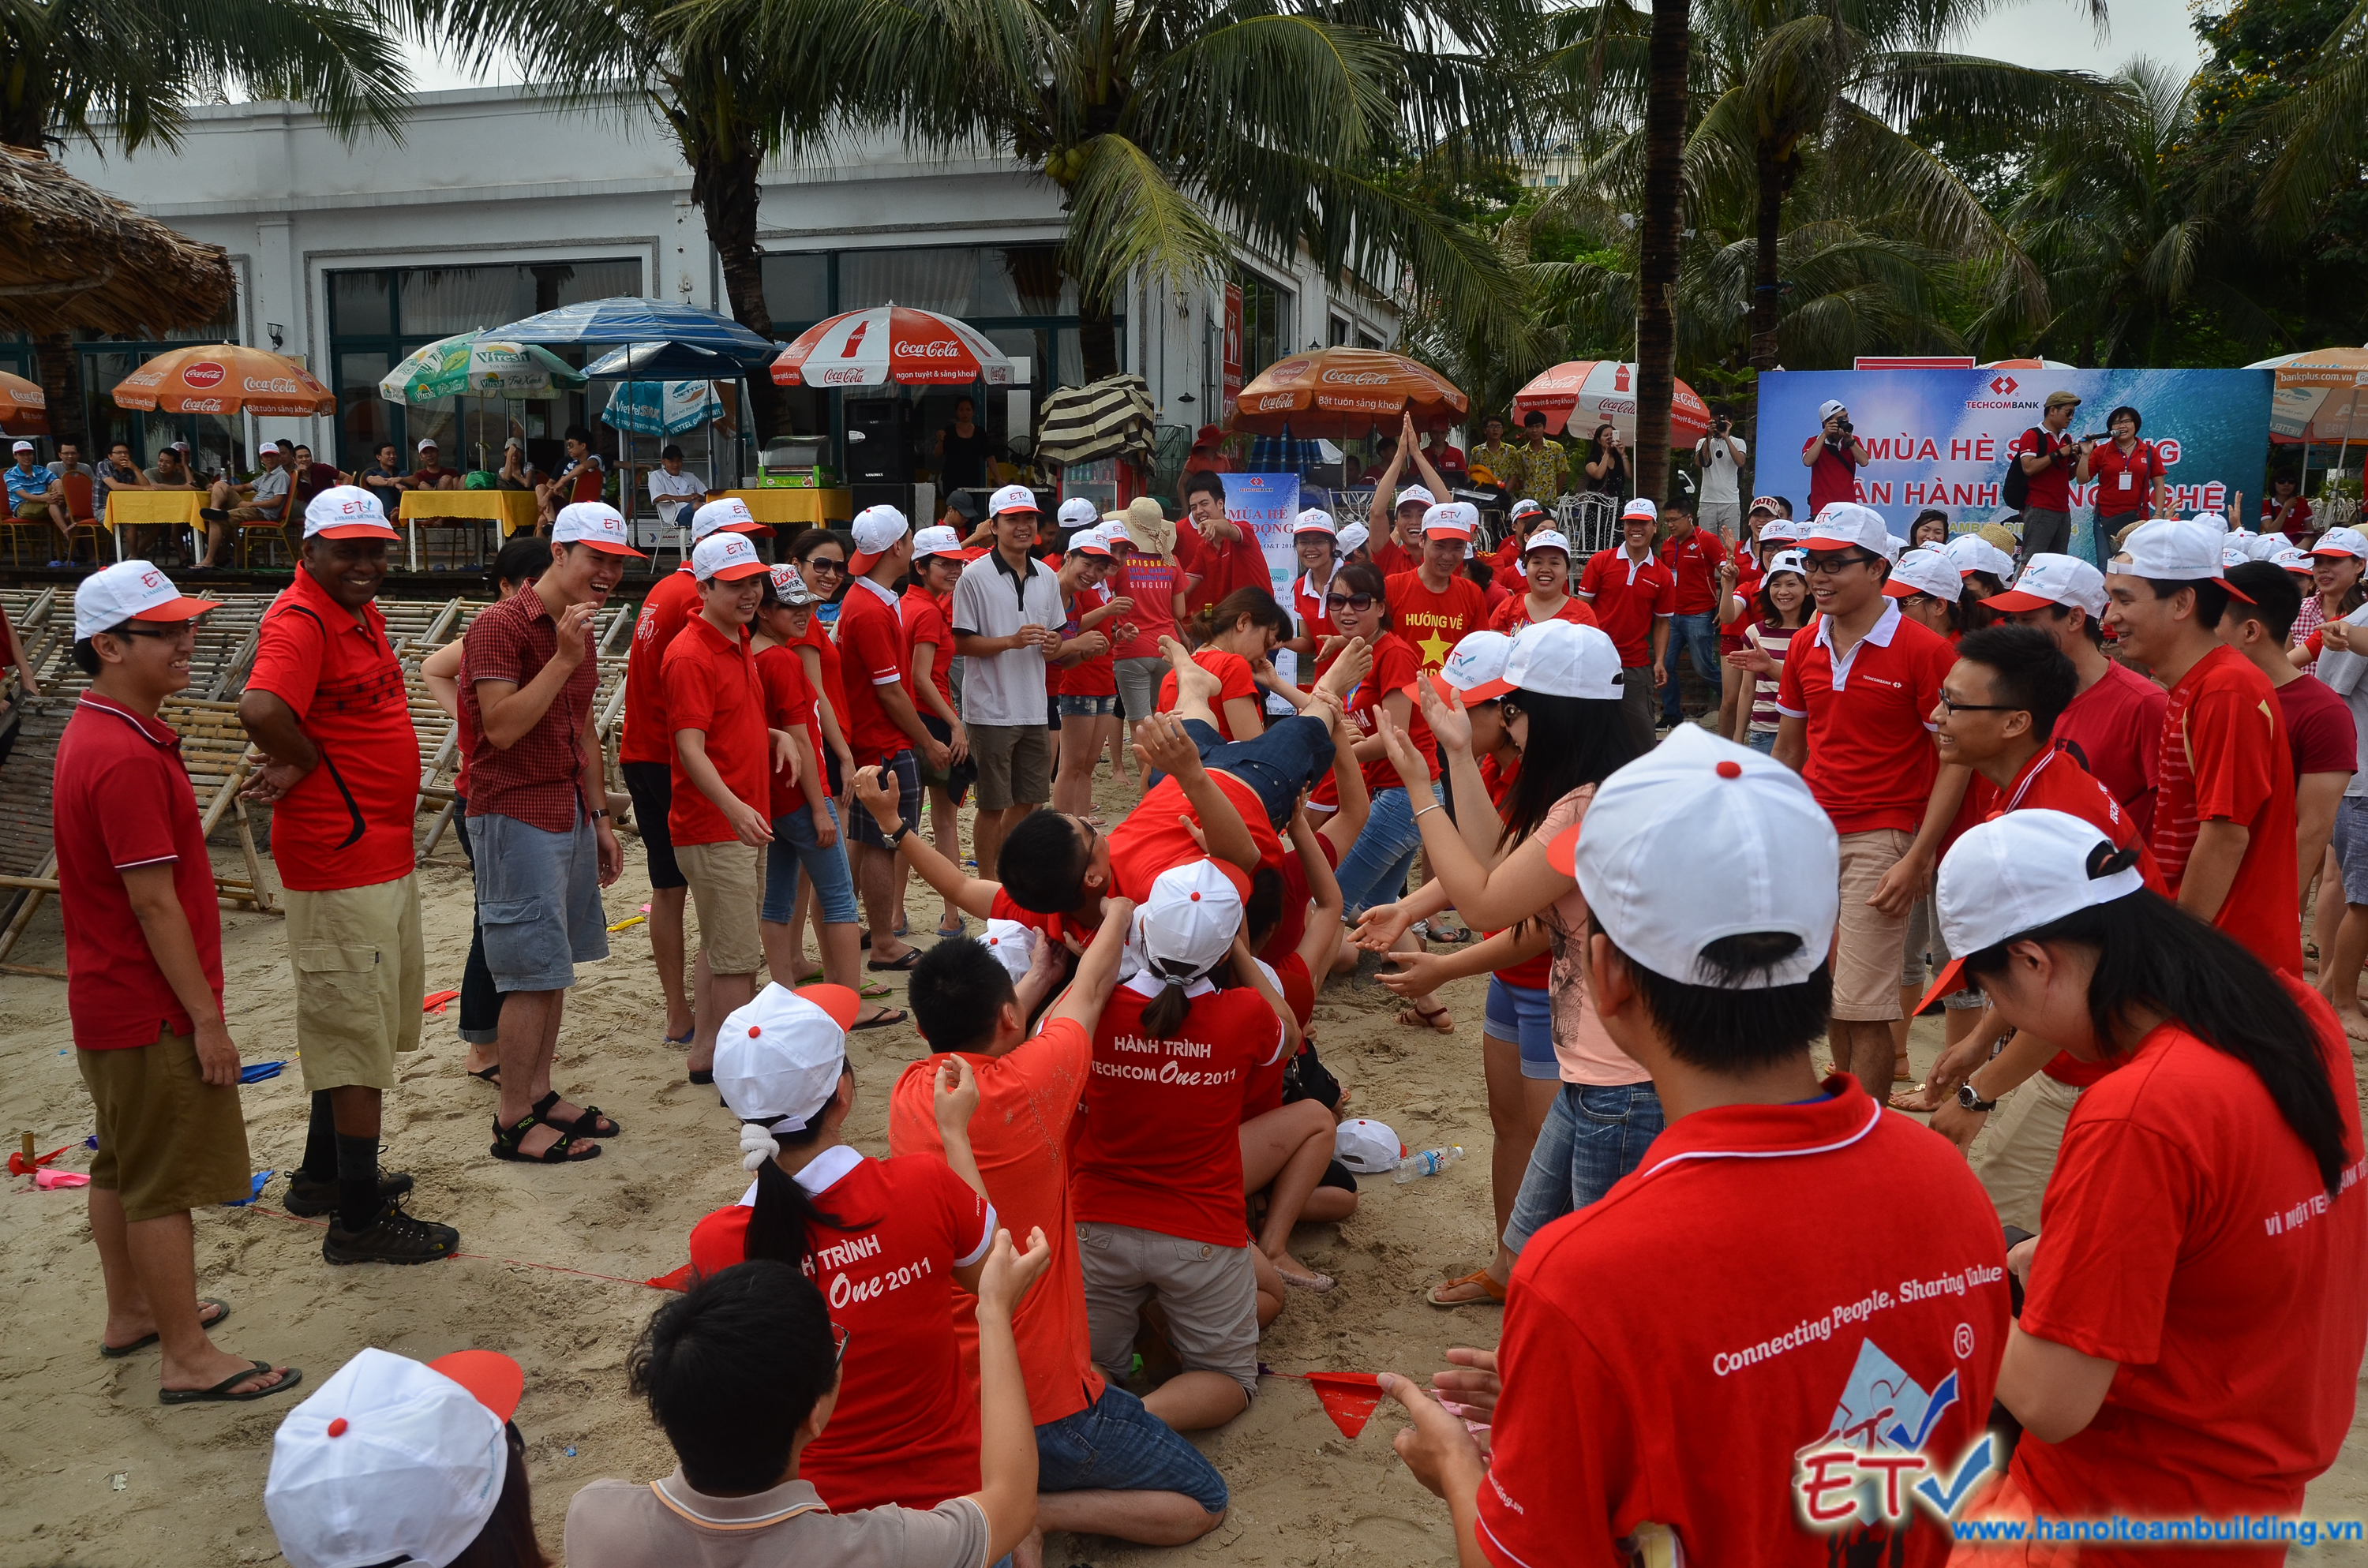 Adventure tour & team in Ha Long, Vietnam